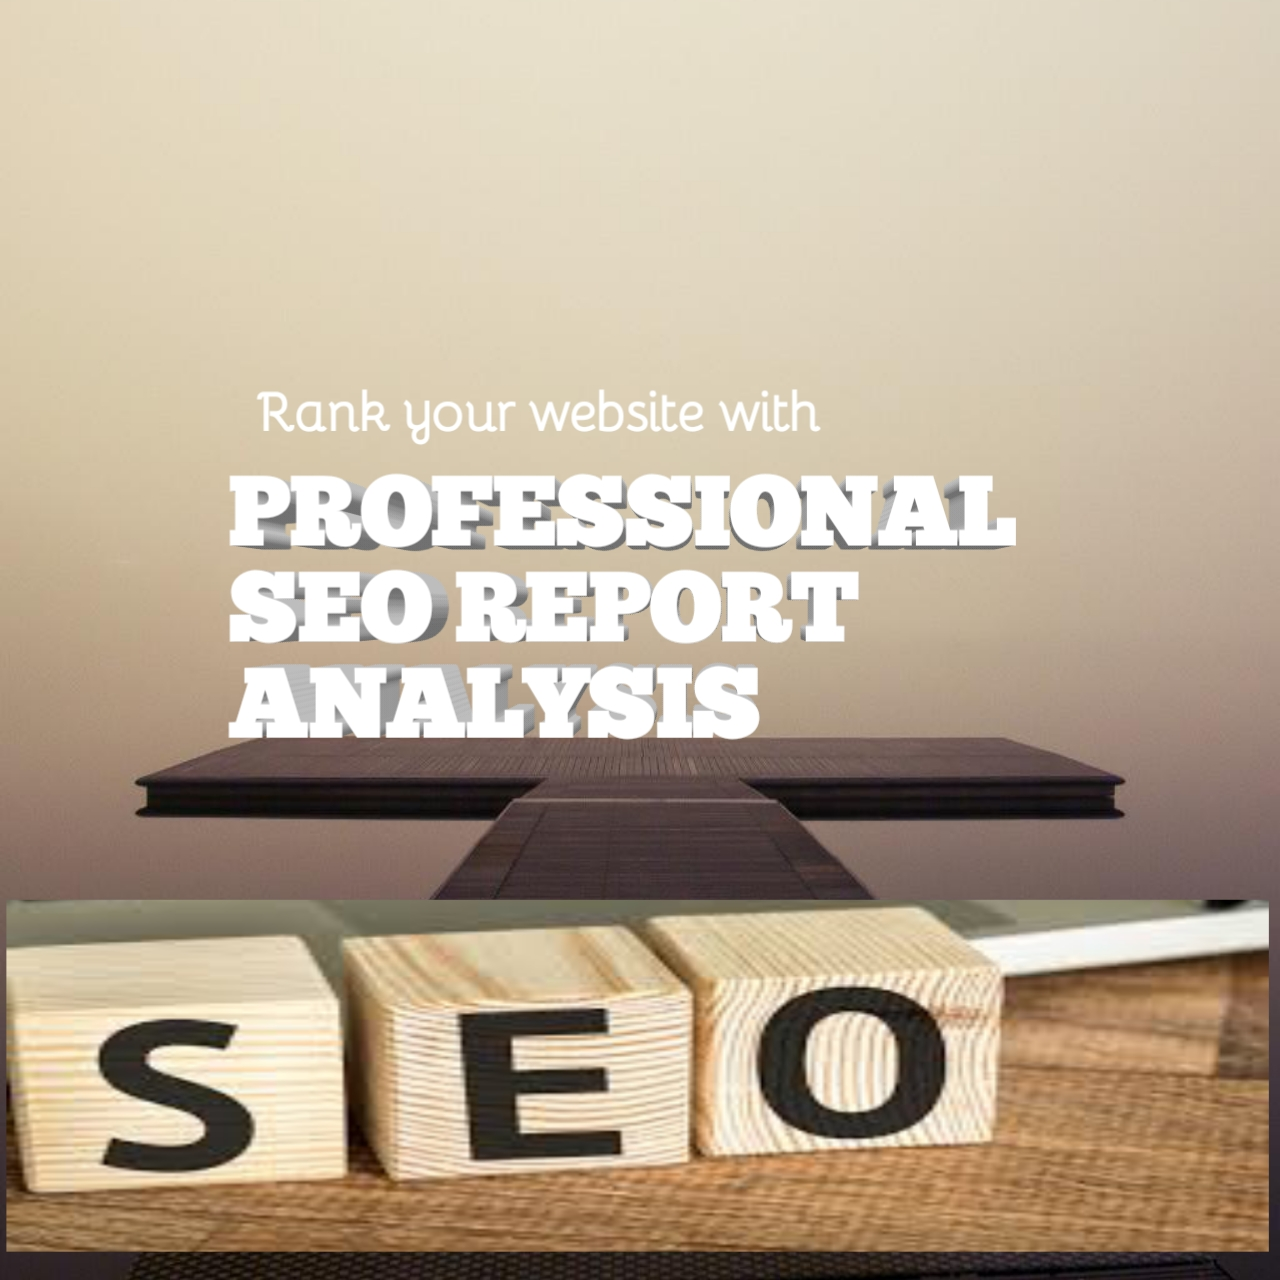 I will deliver Professional SEO report analysis